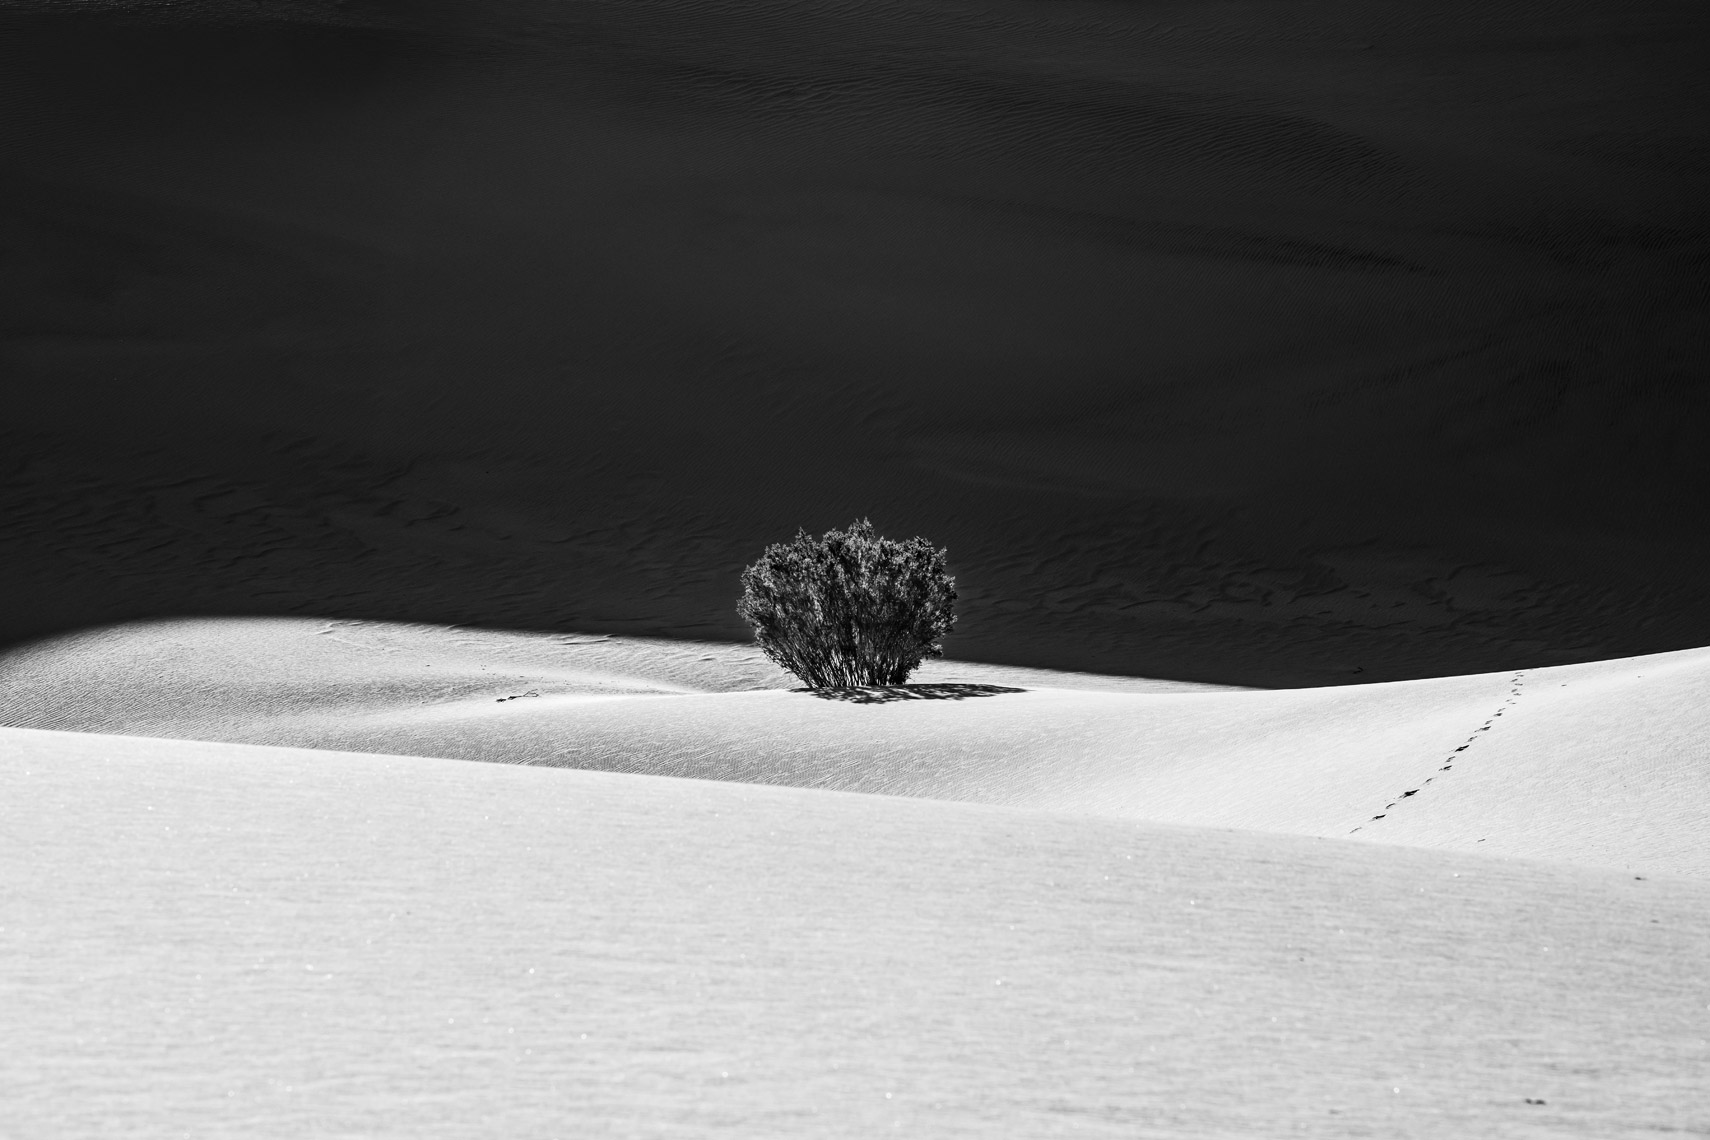 Sand_Dunes_Jussi_Grznar-0231093